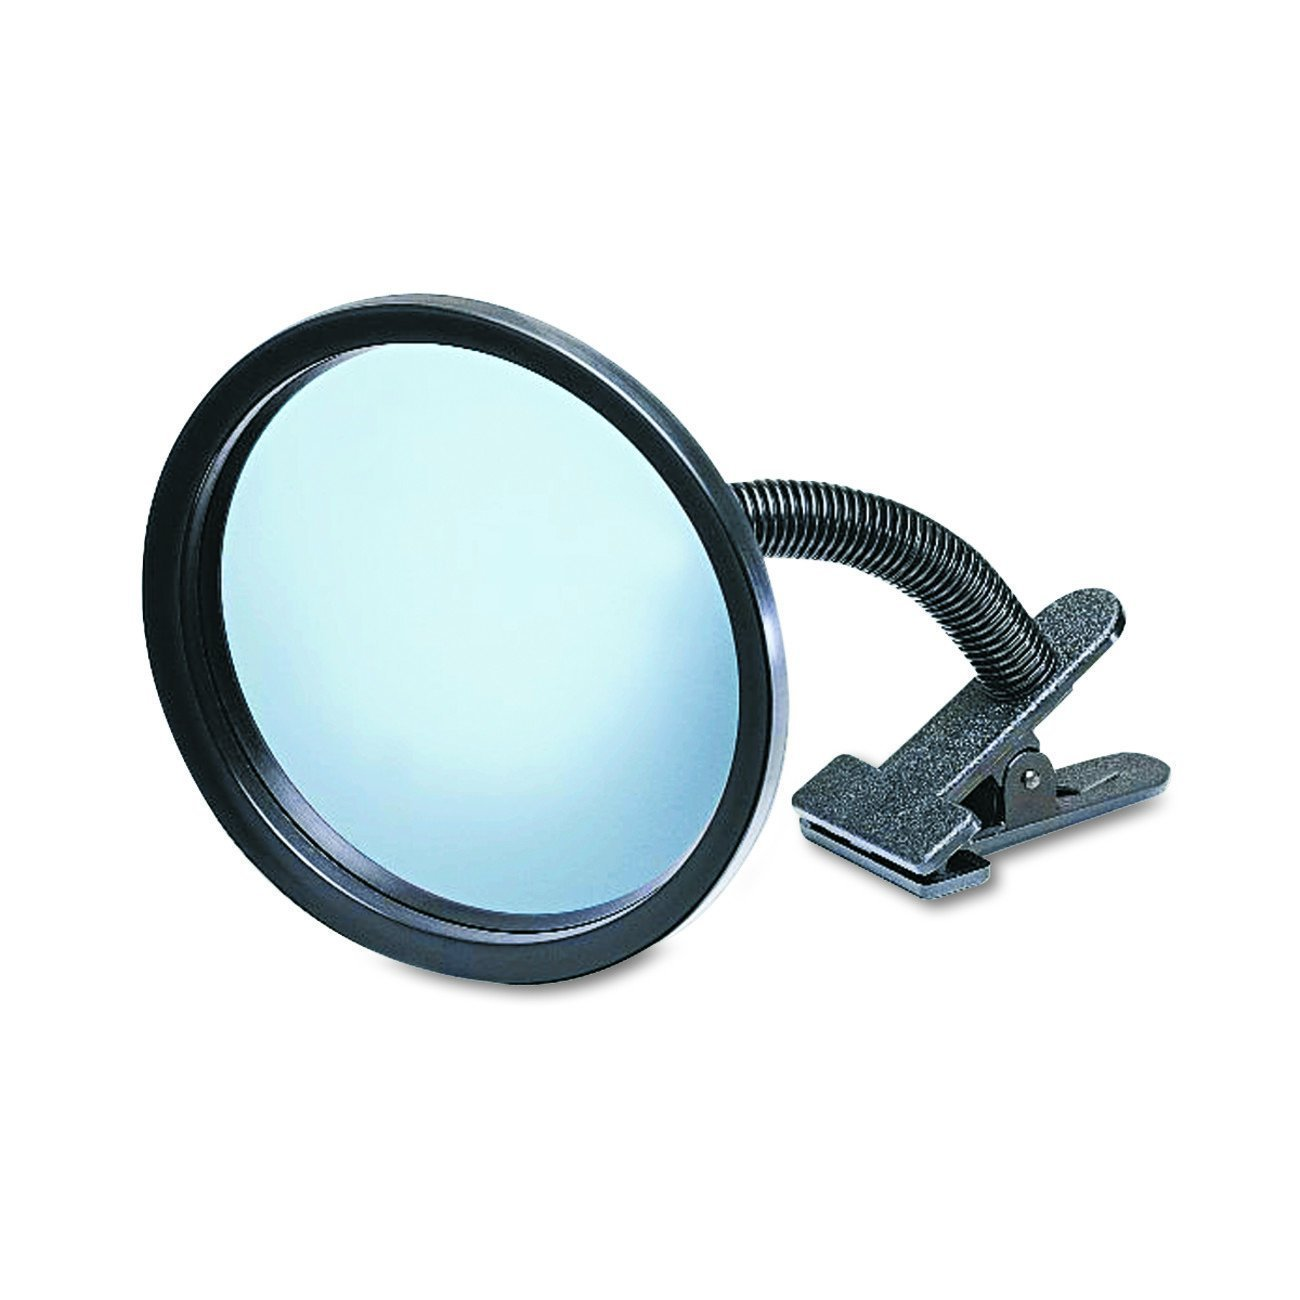 "See All ICU7 Personal Safety and Security Clip-On Convex Security Mirror, 7"" Diameter"